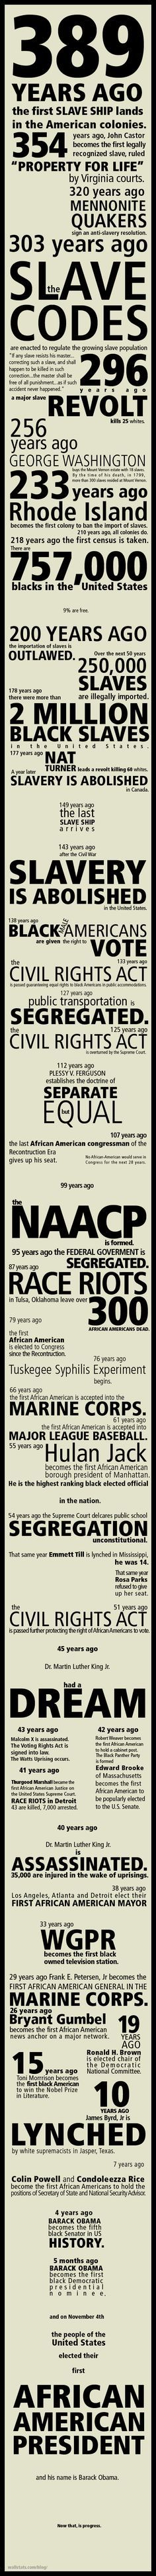 Racism history for African Americans in a quick picture. The picture shows what…